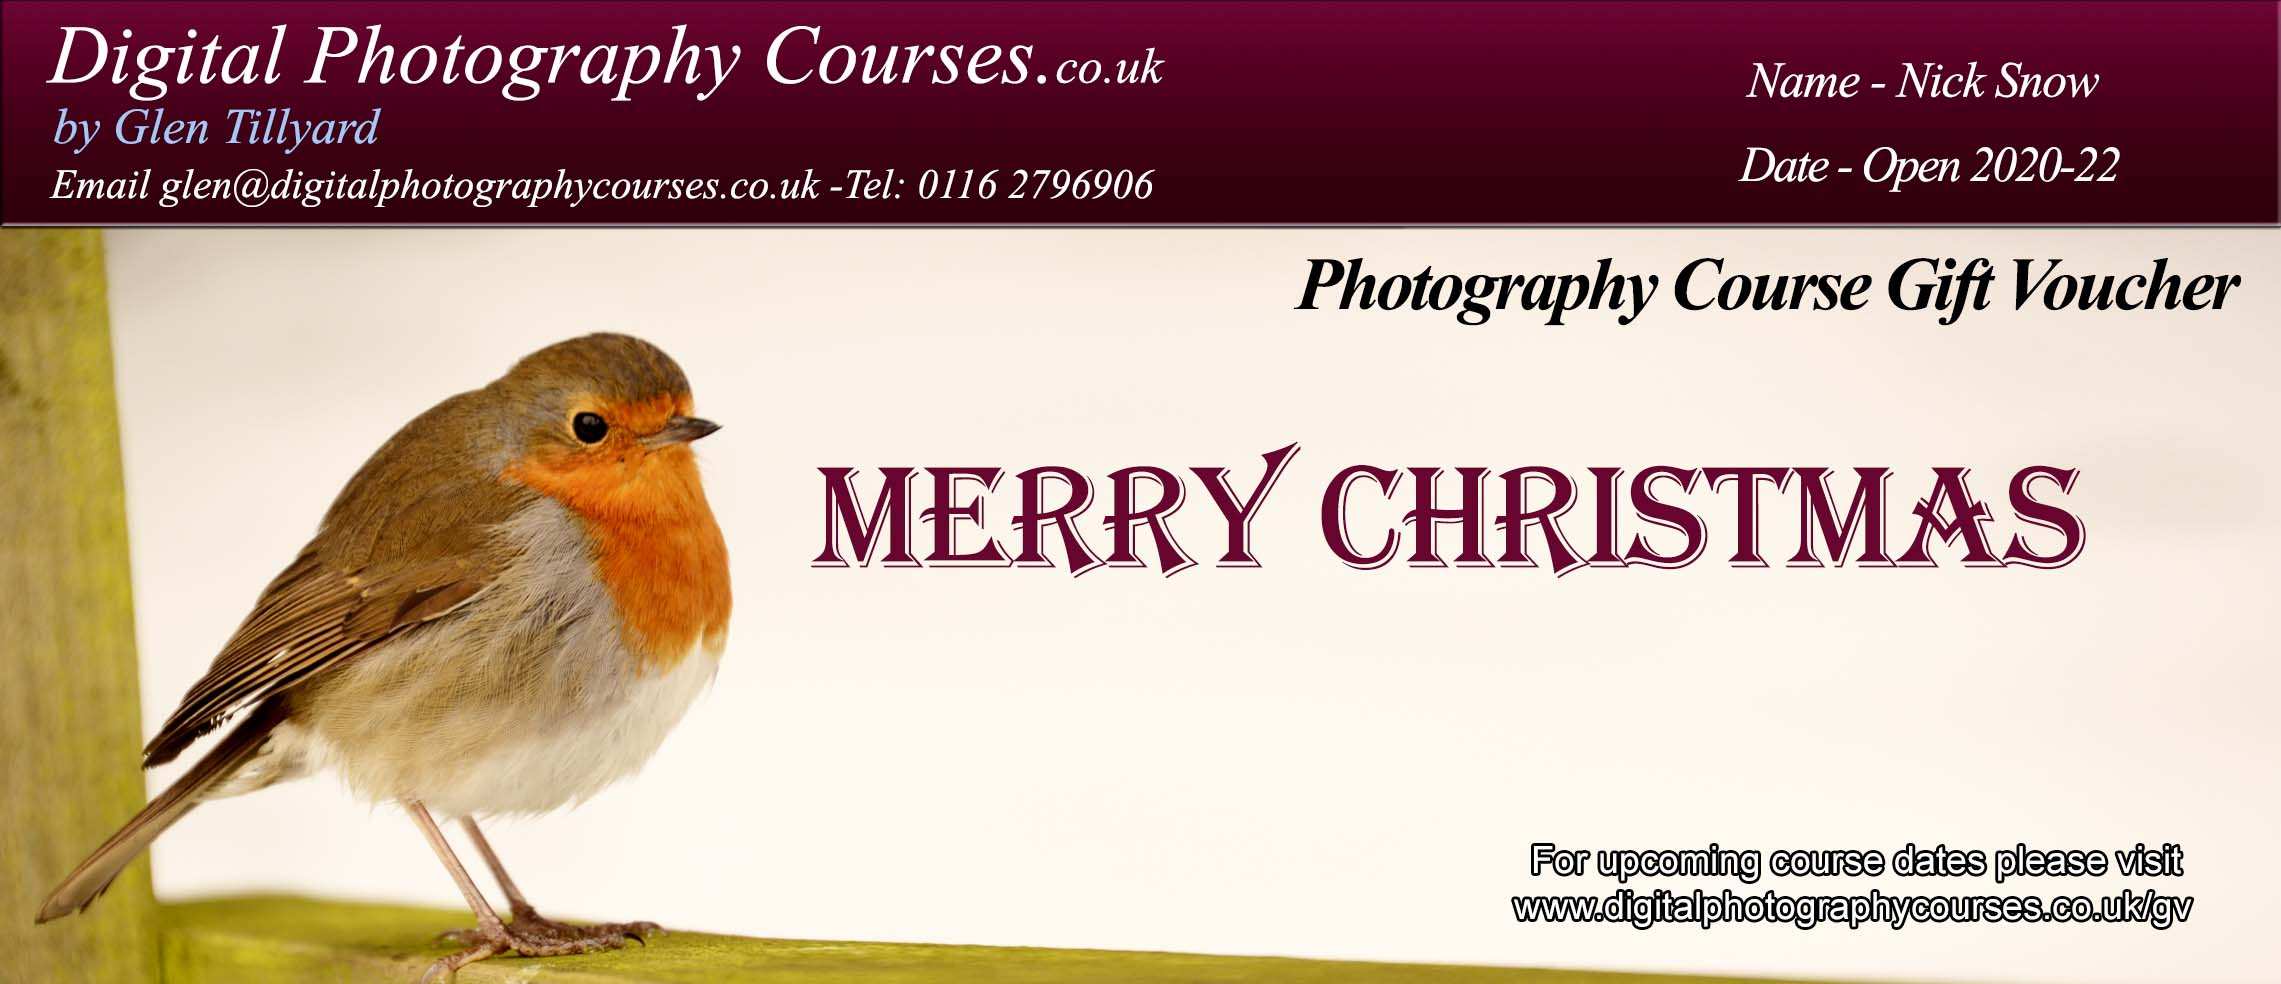 Digital Photography Course Gift Voucher